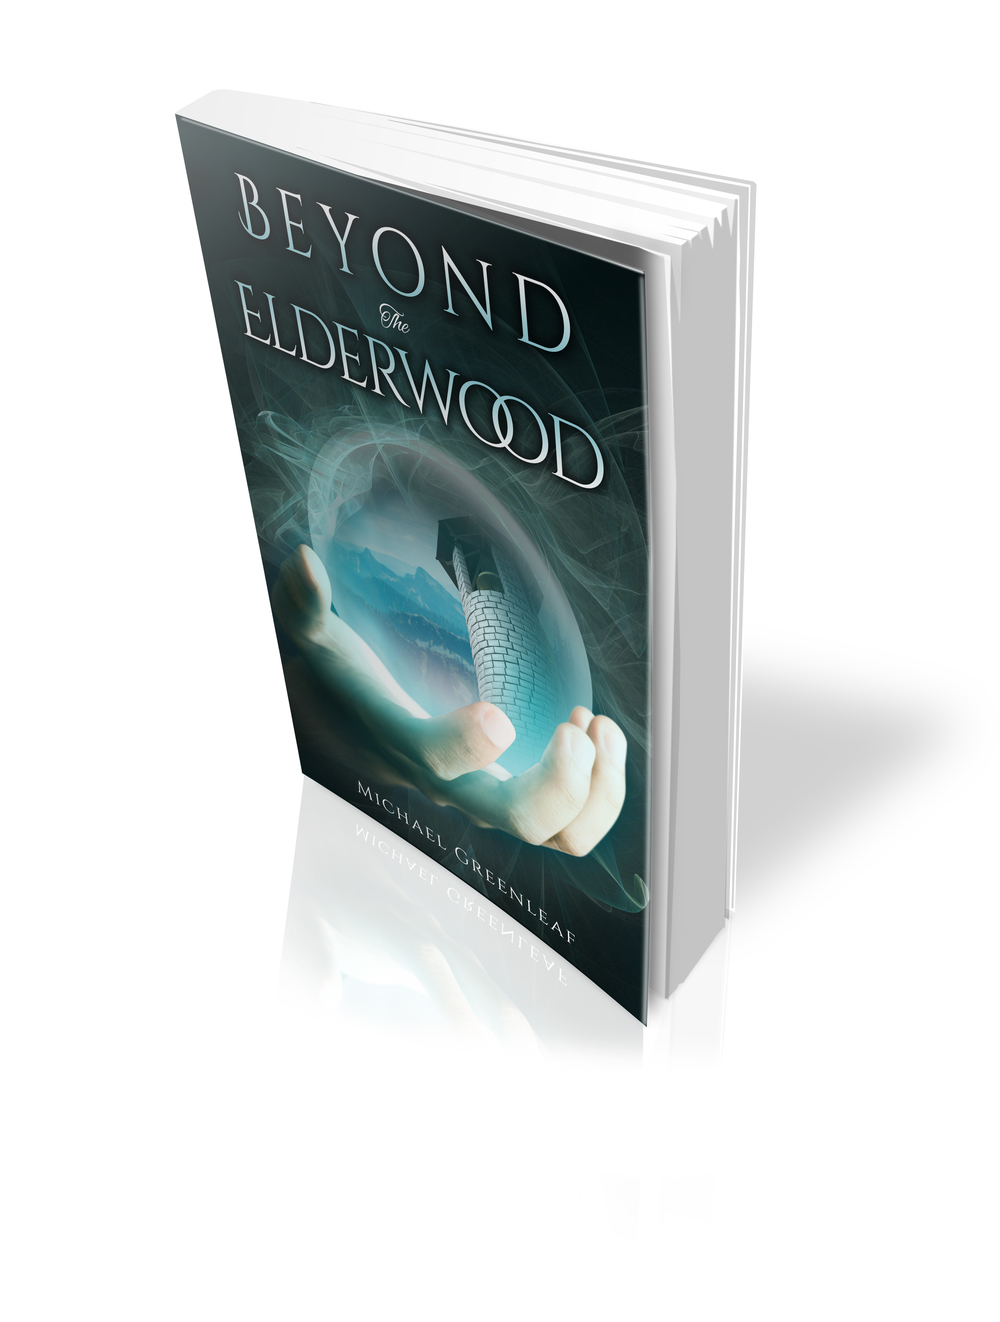 3-D Paperback Cover for Michael Greenleaf's Beyond the Elderwood || Designed by TheThatchery.com